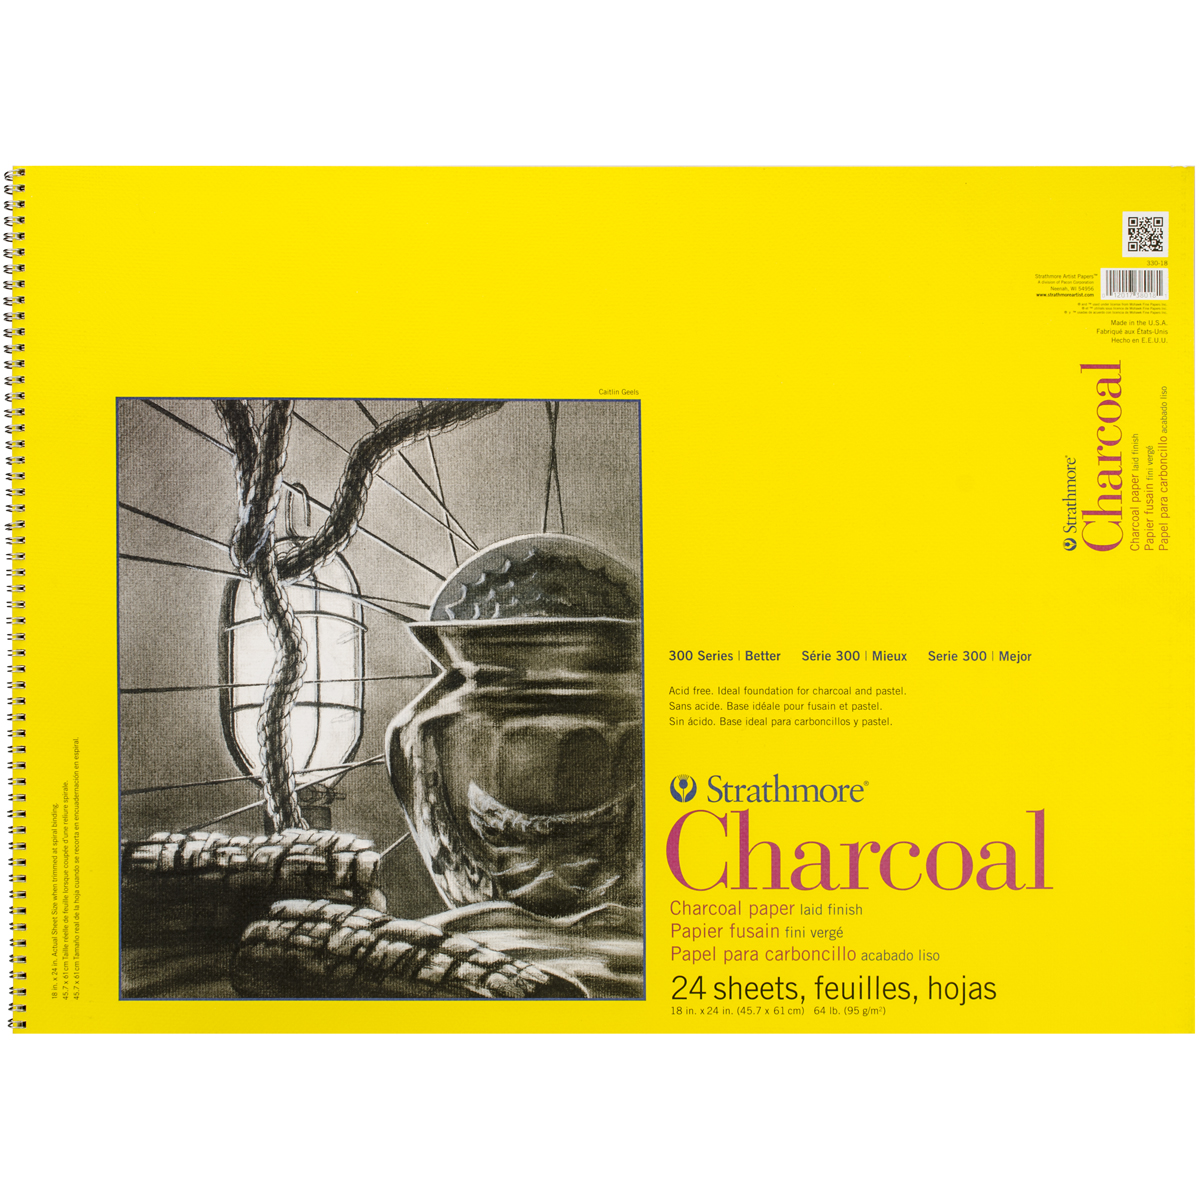 "Strathmore Charcoal Paper Pad, 18"" x 24"", 64lb, White, 24 Sheets"